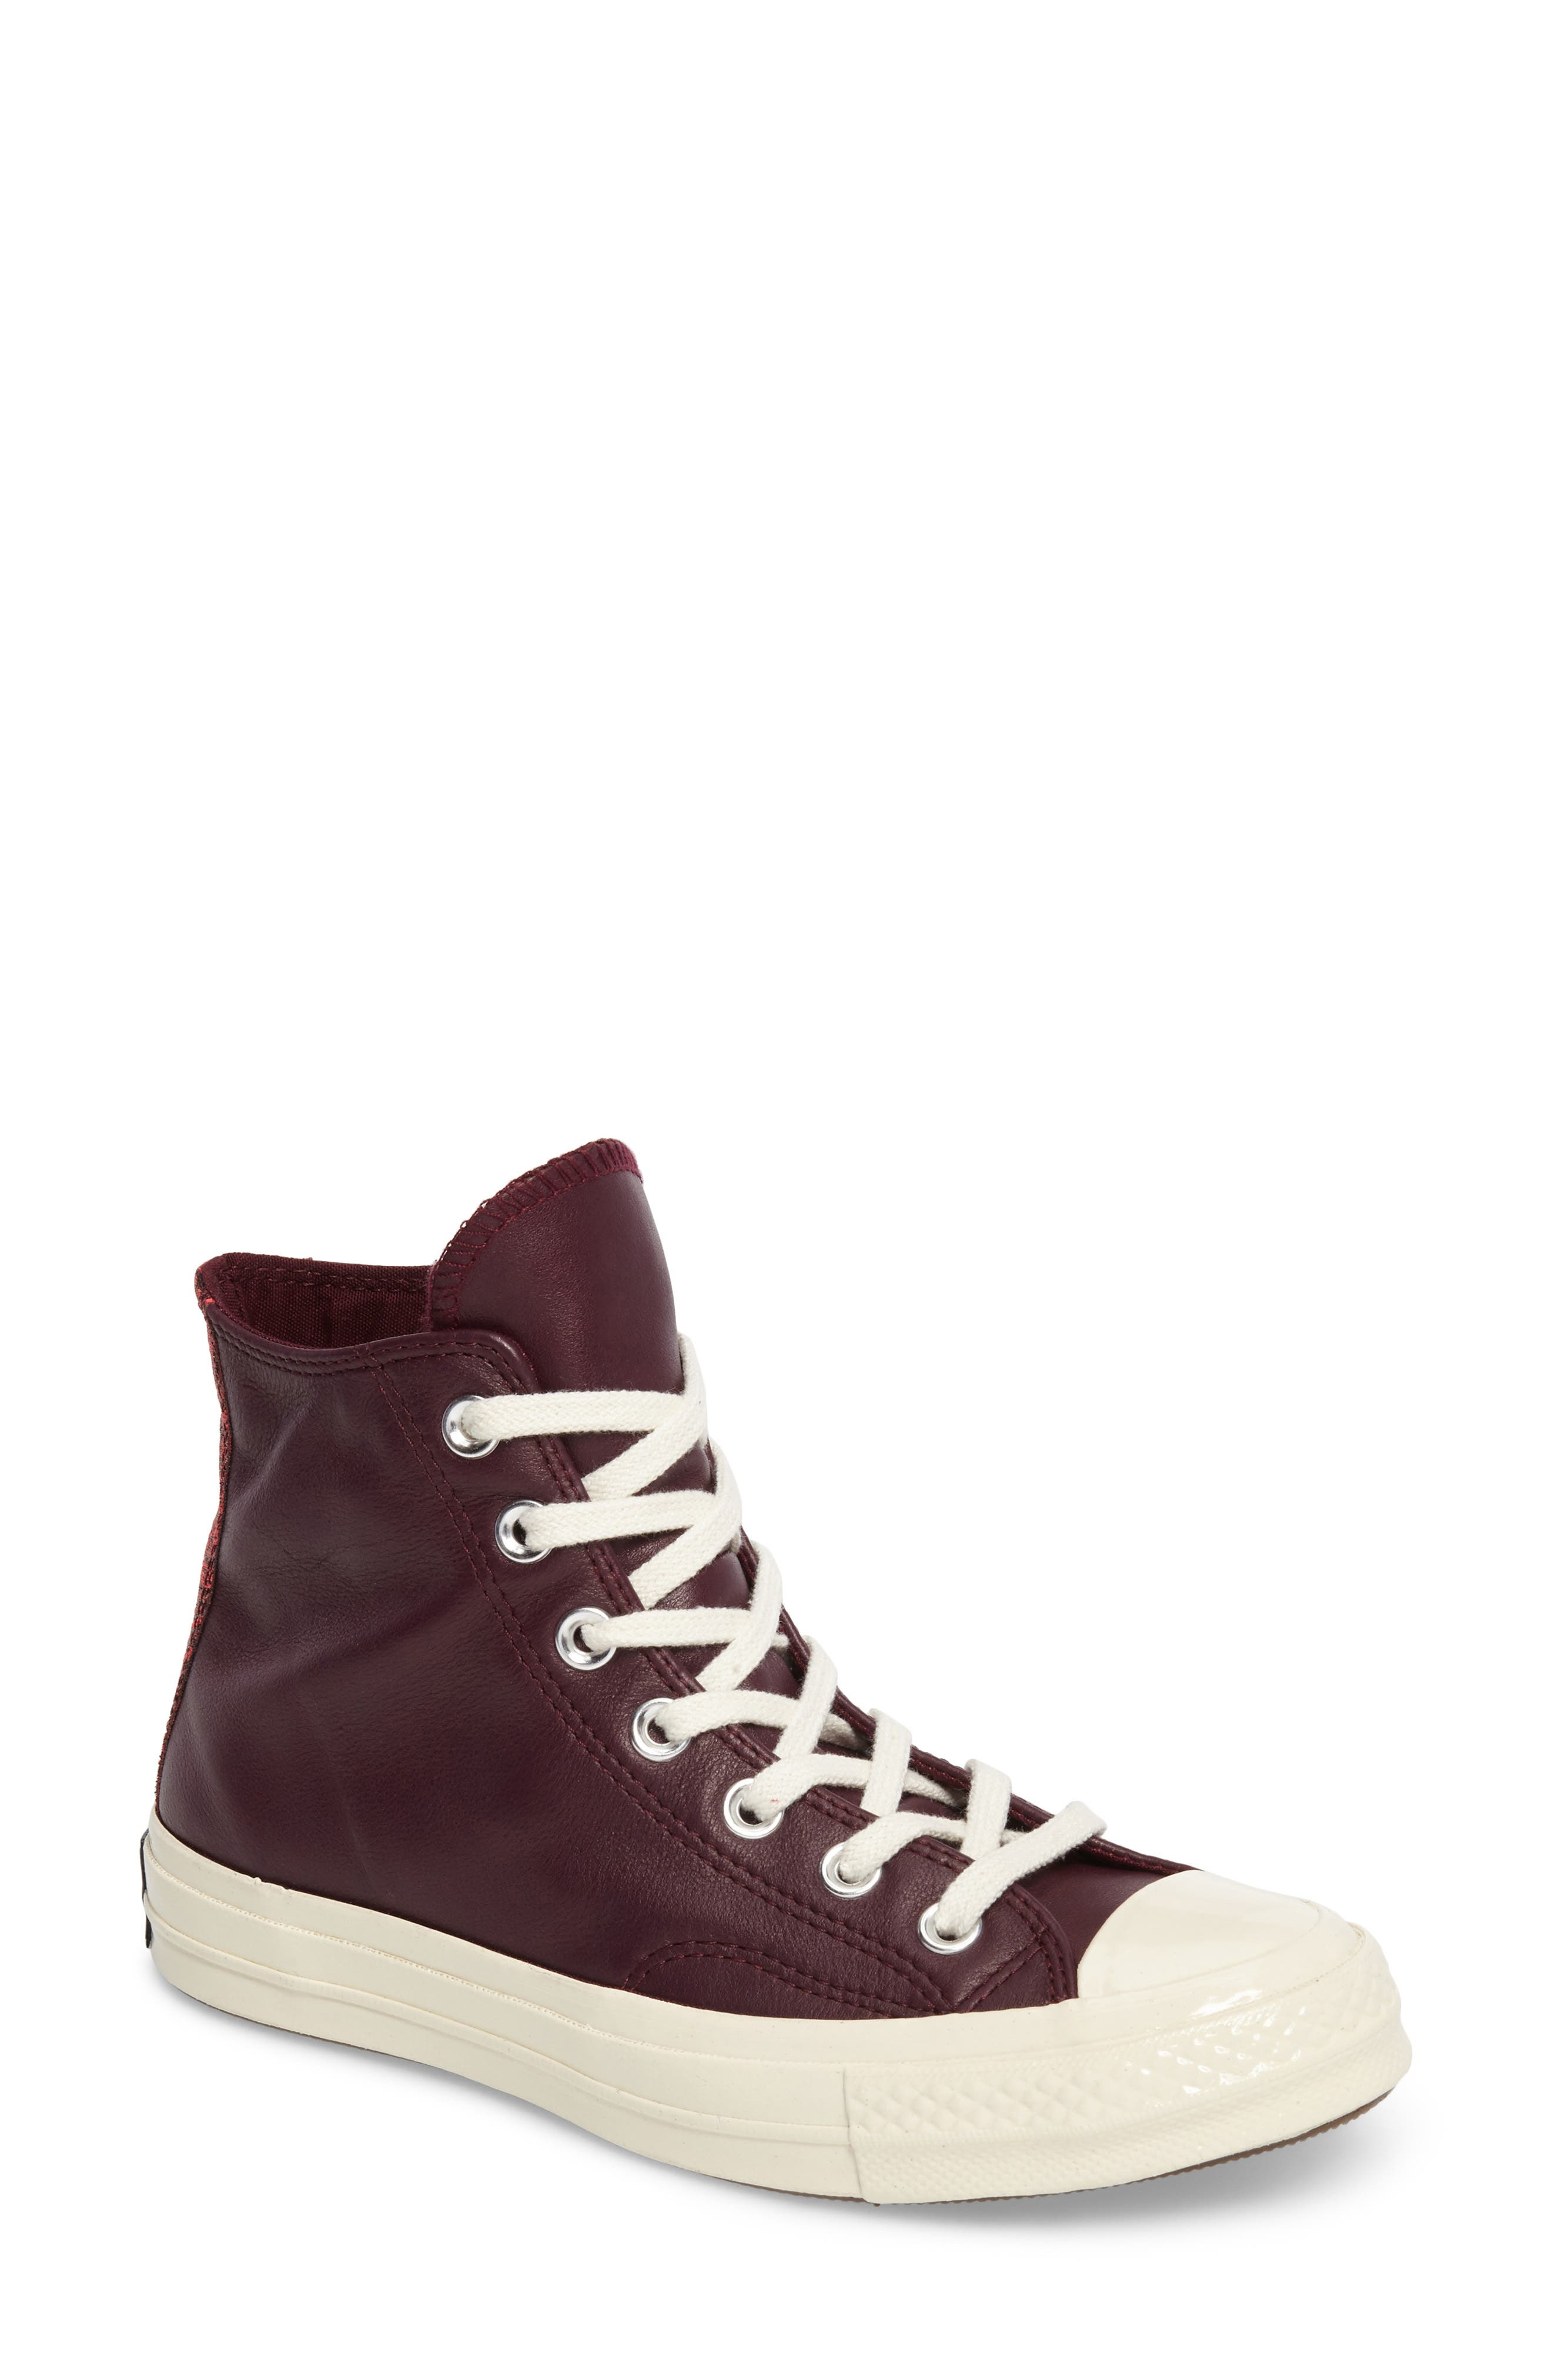 Main Image - Converse Chuck Taylor® All Star® 70 High Top Sneaker (Women)